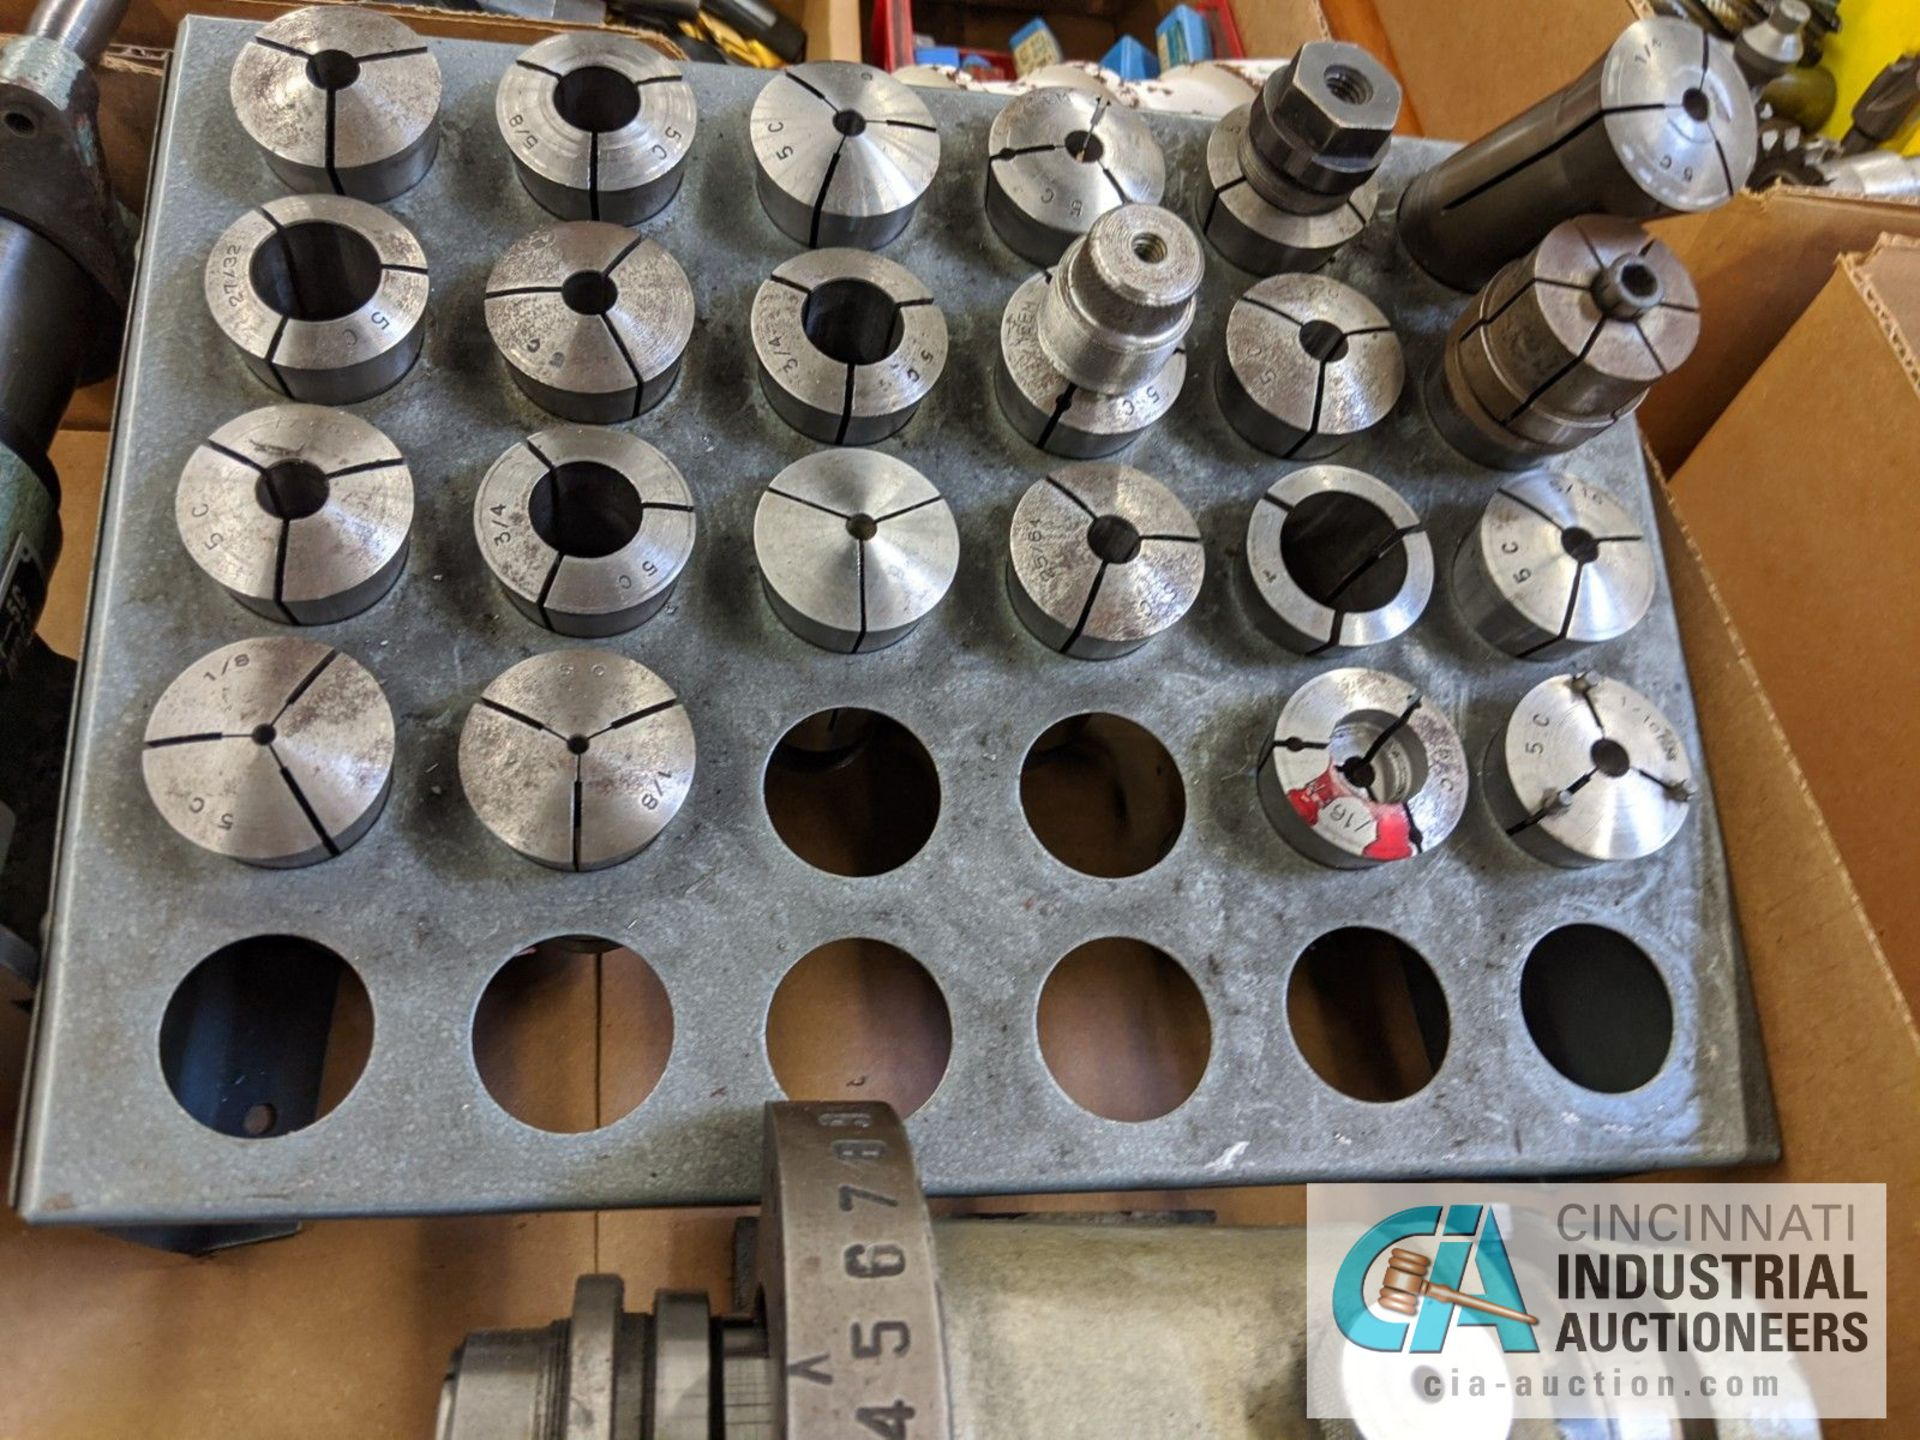 (LOT) ASSORTED 5C TOOLING; COLLETS AND SPIN FIXTURES - Image 5 of 5